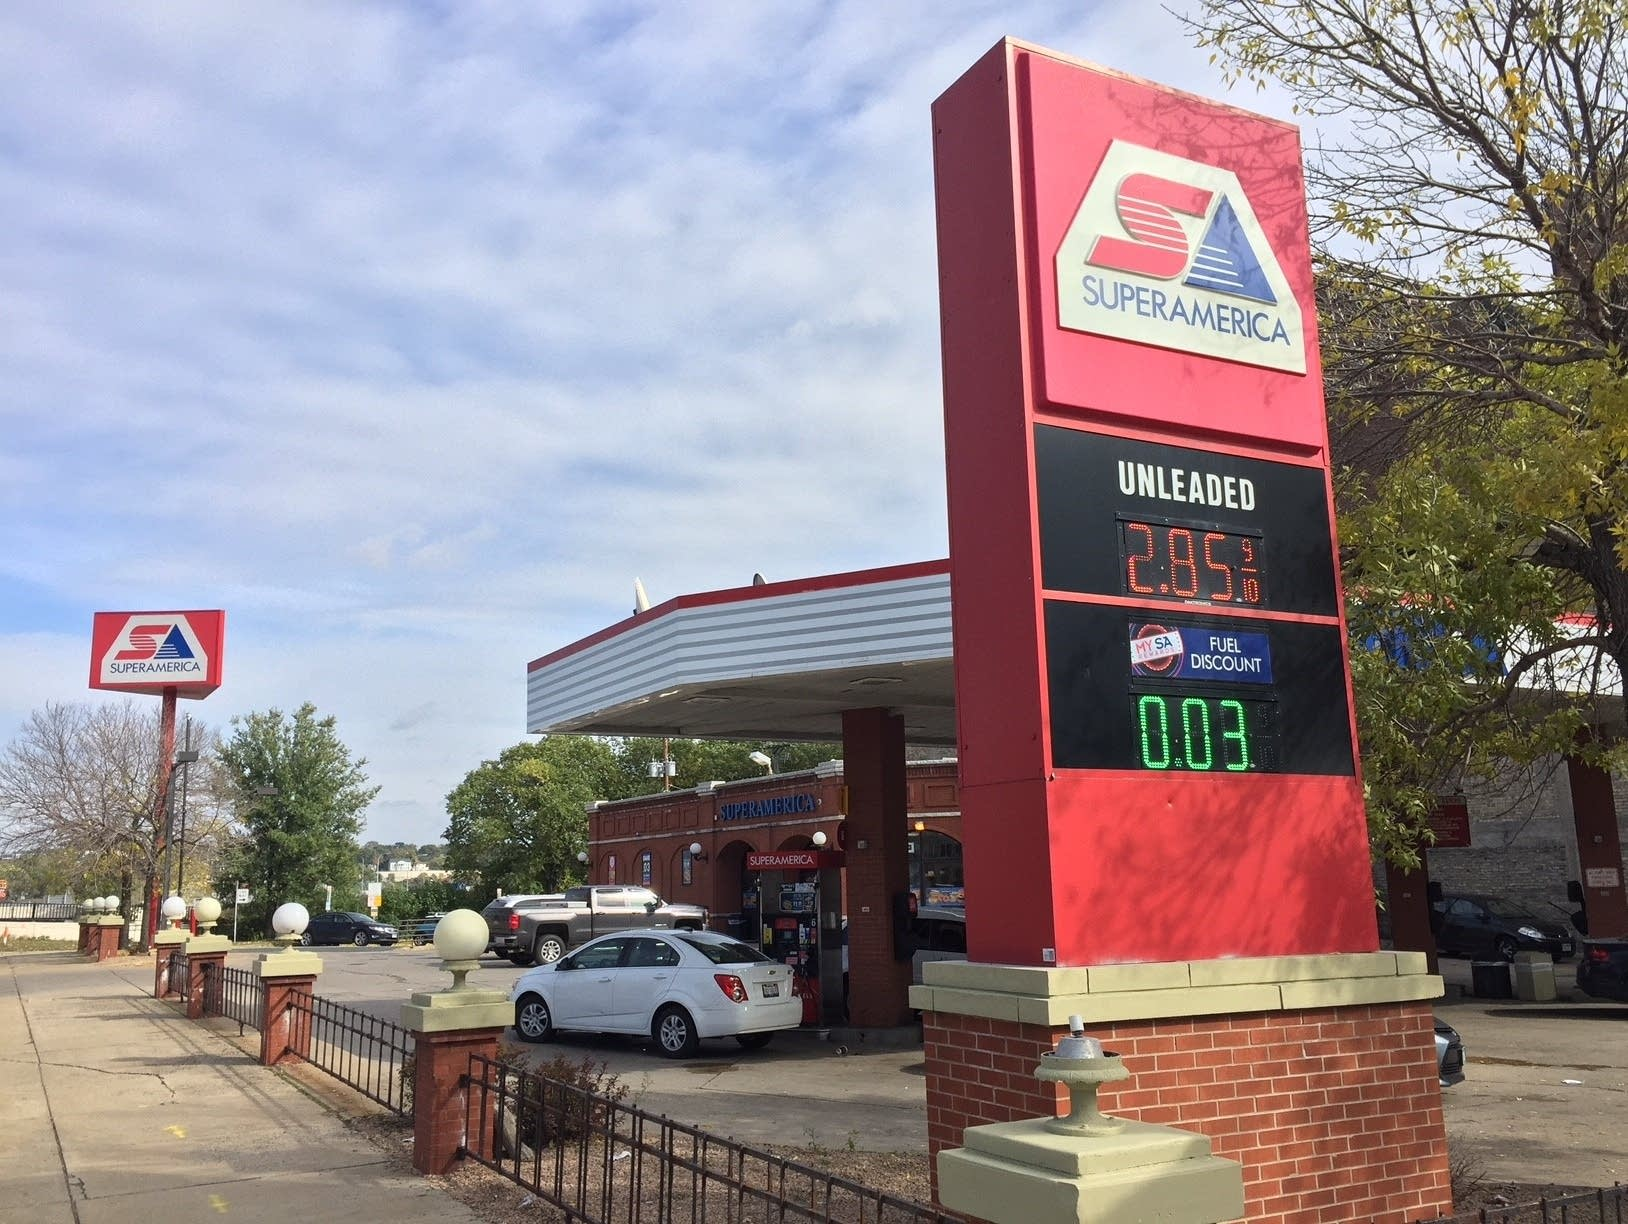 SuperAmerica gas station